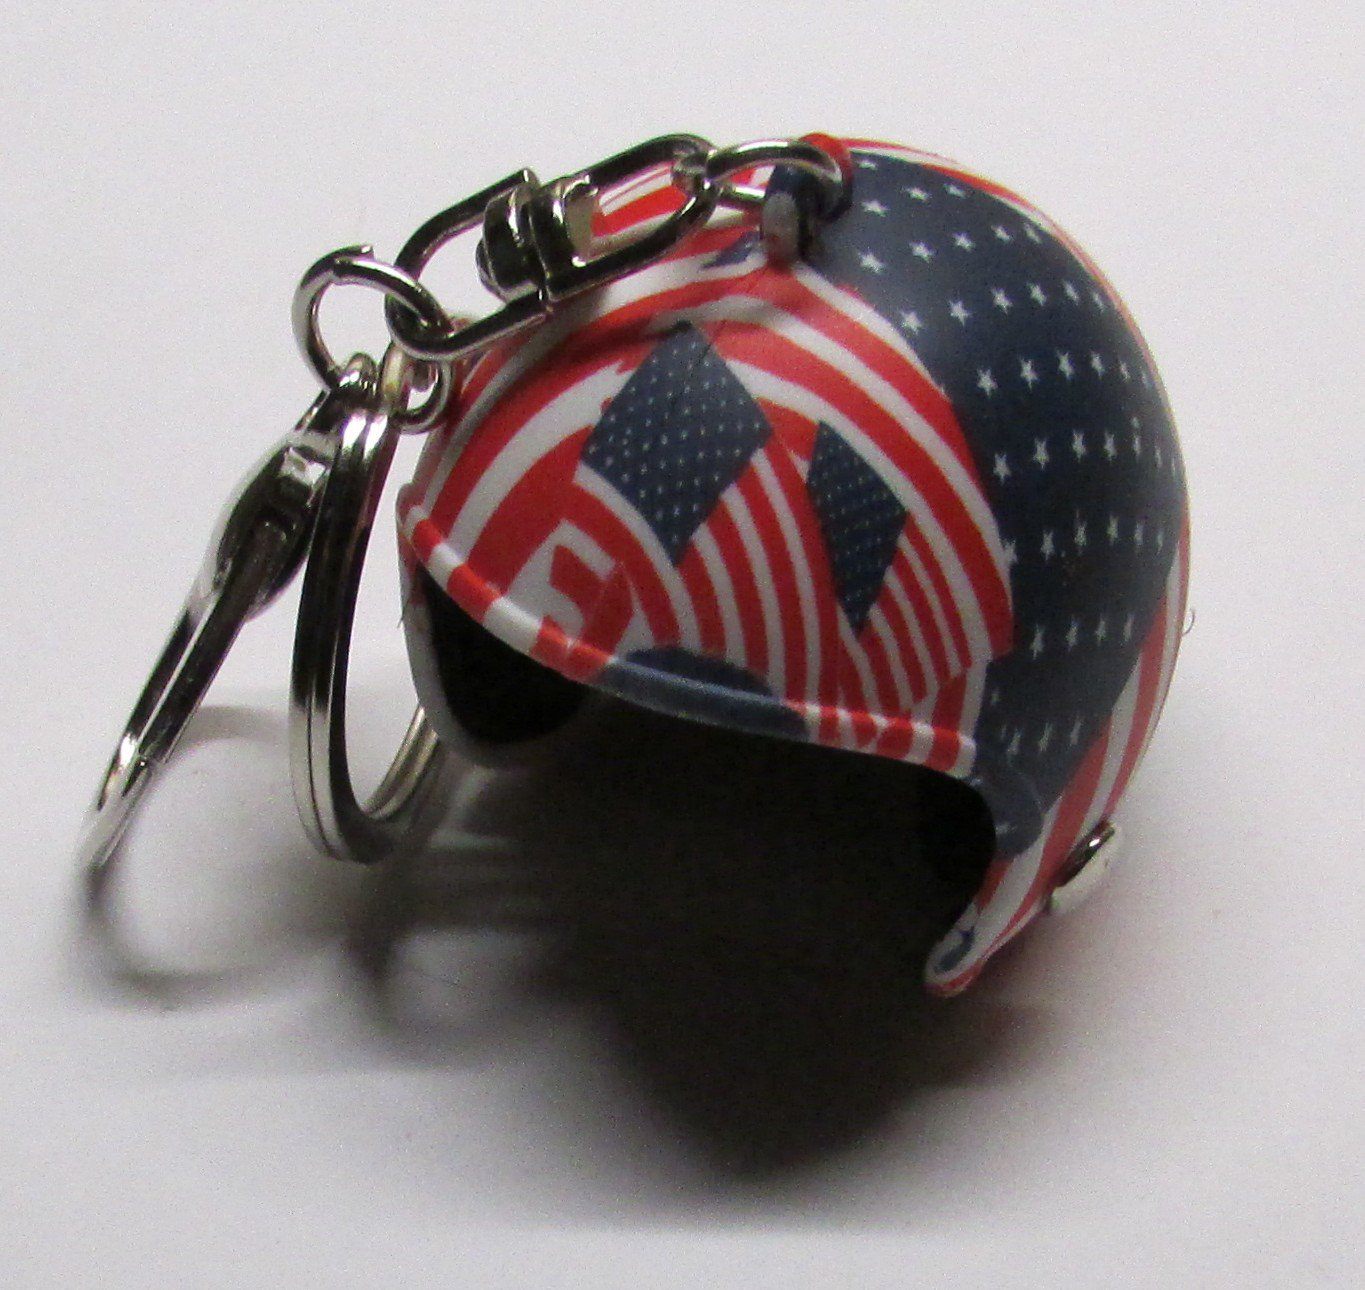 USA American Motorcycle Helmet KEY CHAIN Ring Keychain NEW